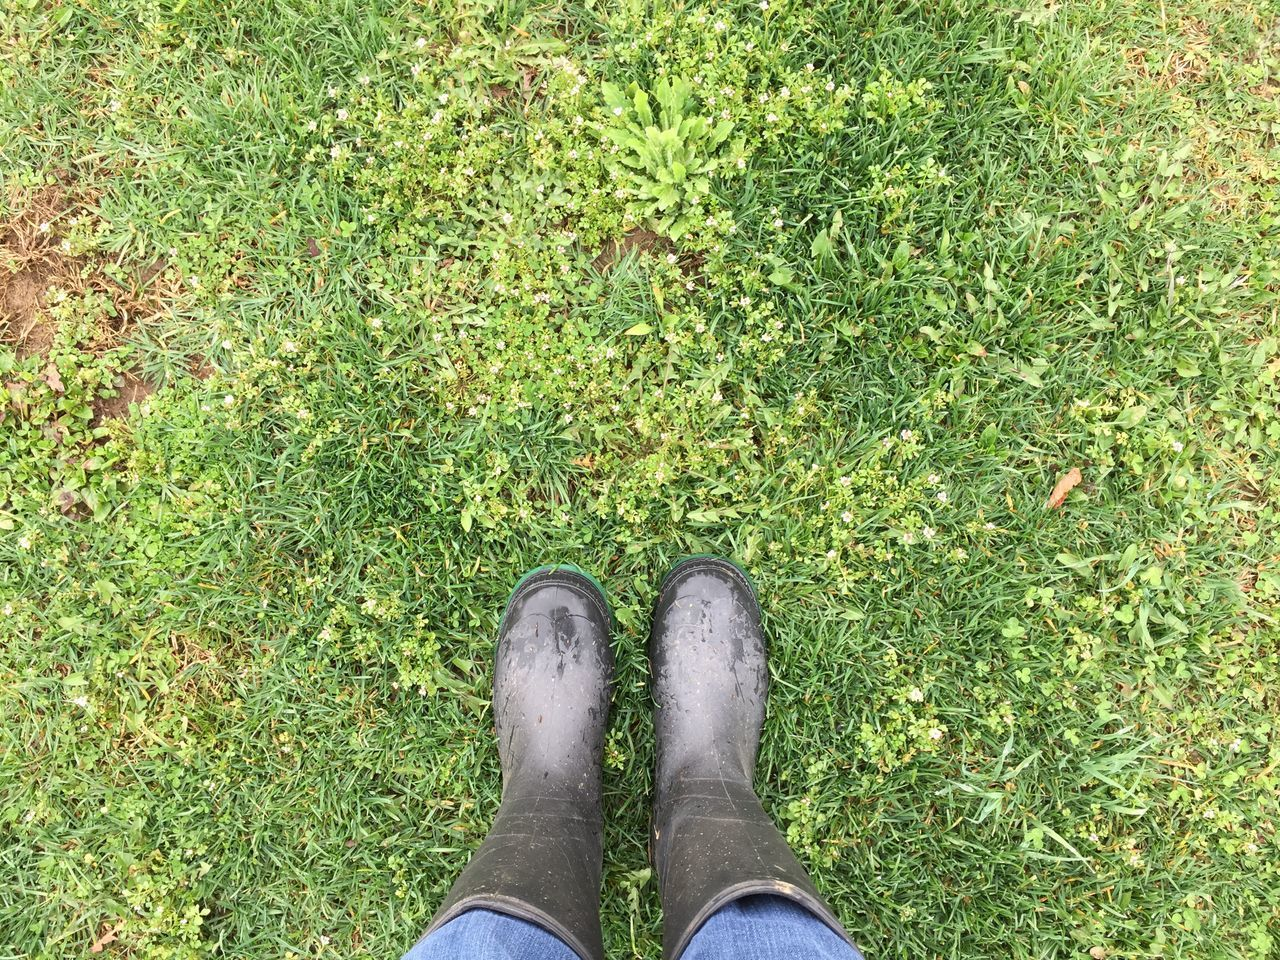 Grass Green Color Low Section Shoe Personal Perspective Standing Outdoors One Person Real People Day Human Leg Nature Human Body Part Rubber Boots Spring People